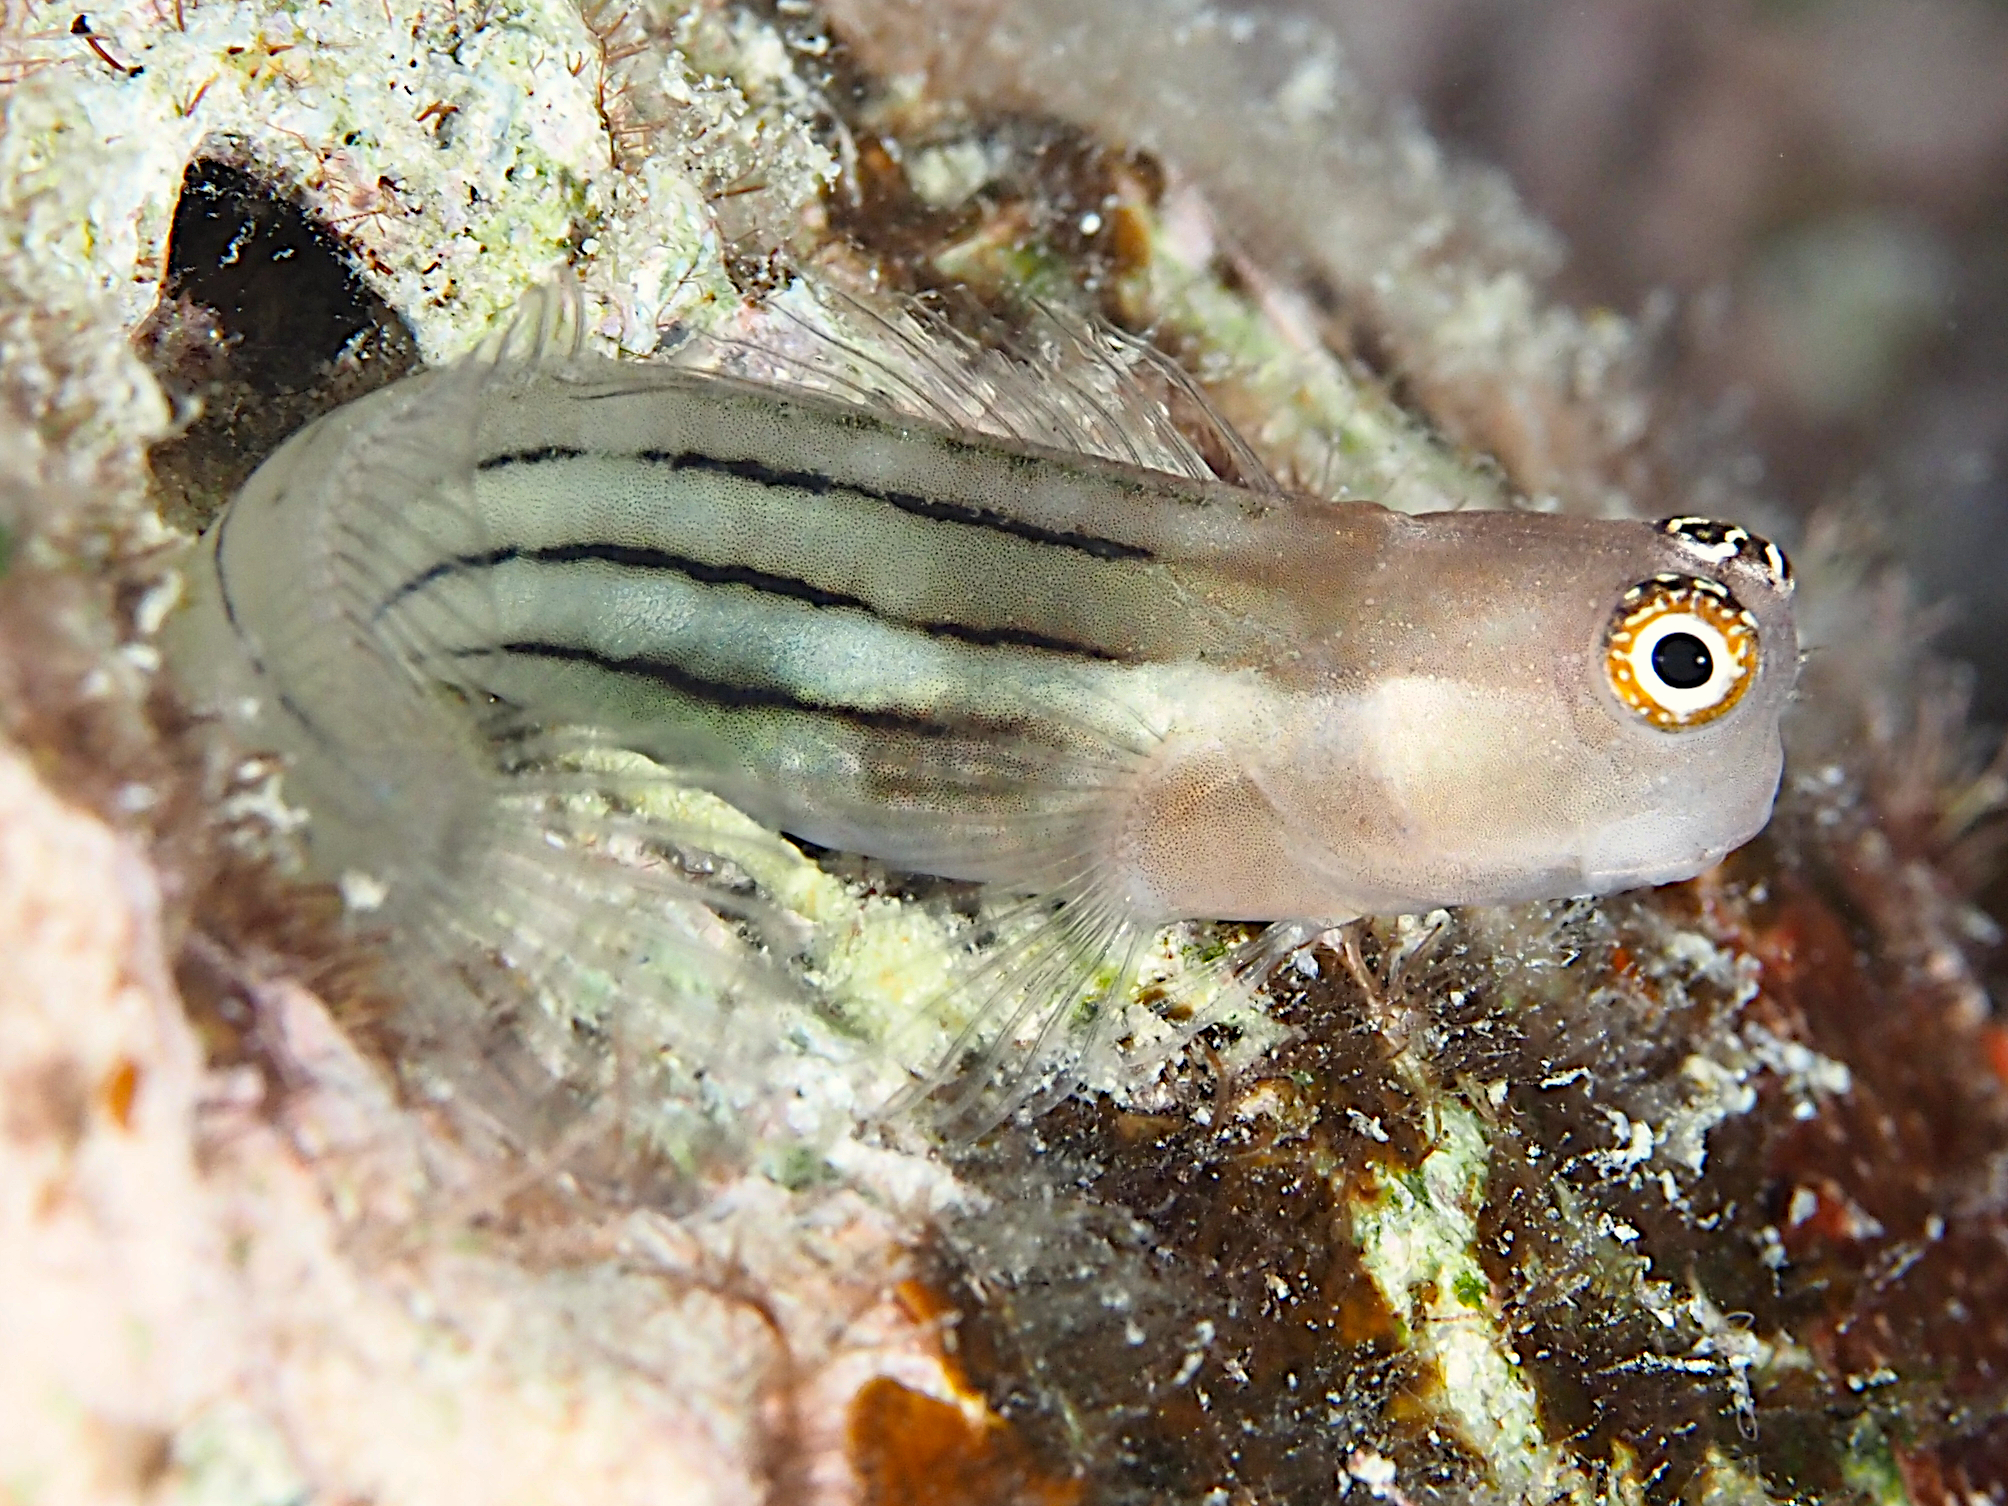 Fourline Coralblenny - Ecsenius aequalis - Great Barrier Reef, Australia